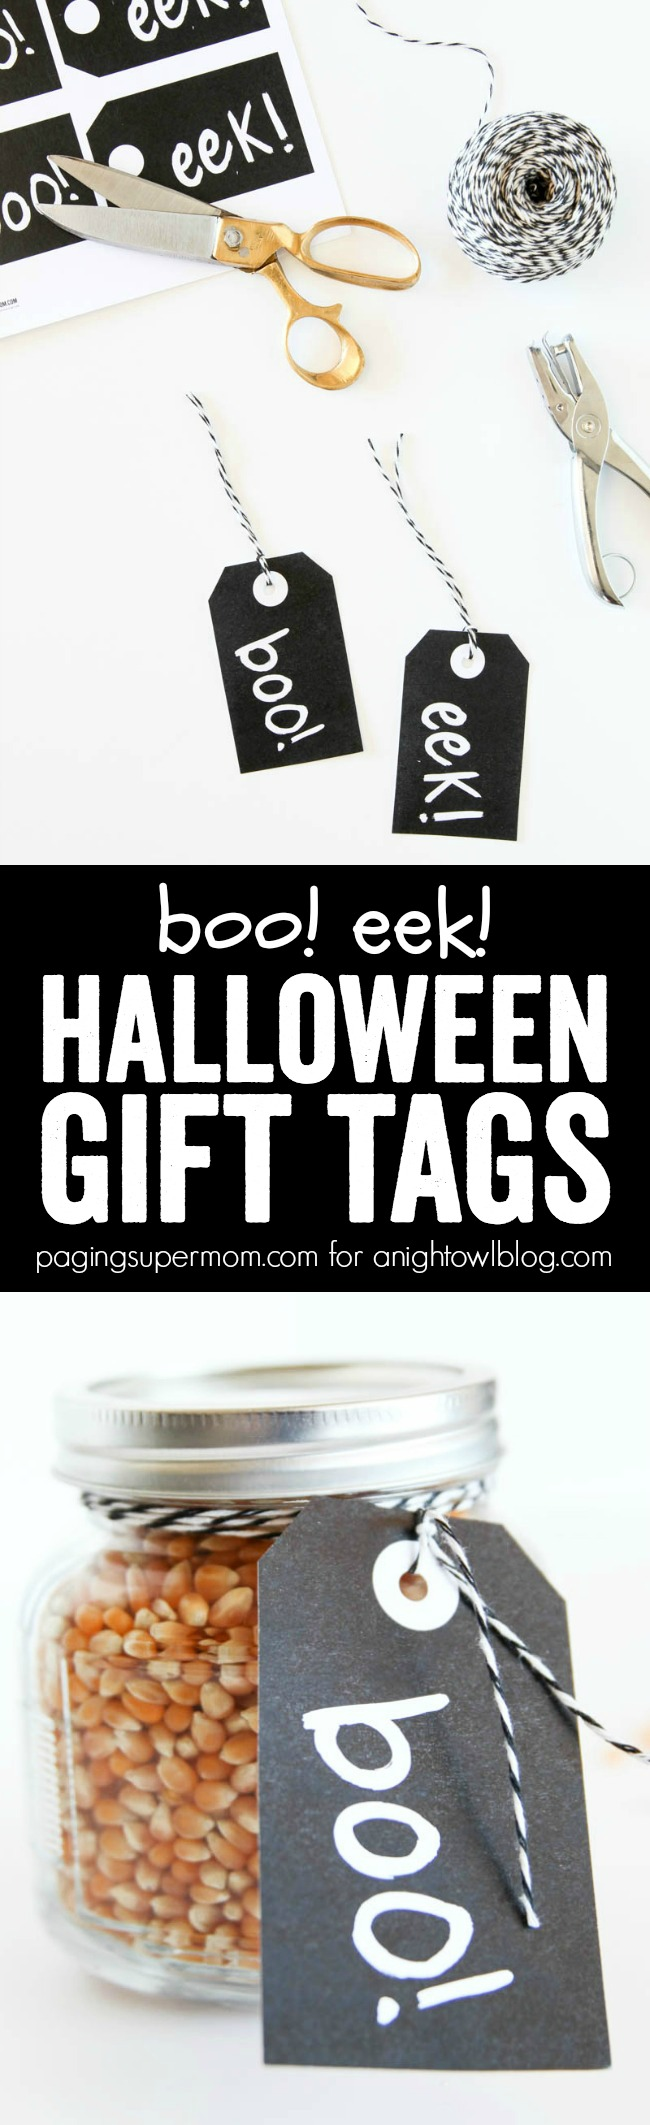 These Boo Eek Gift Halloween Tags make a fun last-minute gift idea for Halloween.